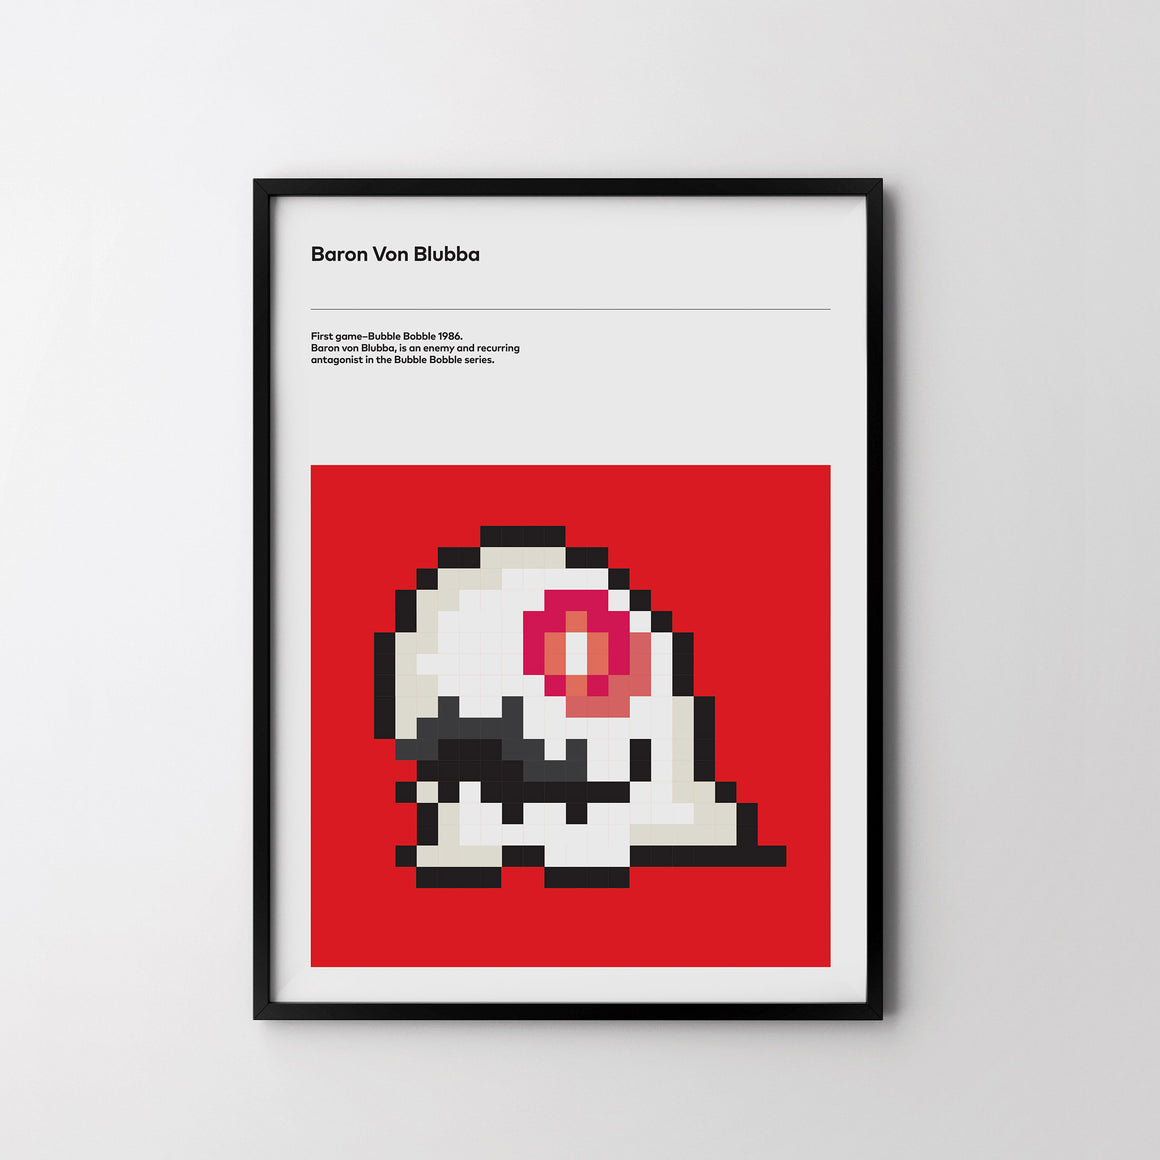 BARON VON BLUBBA 1986 Retro Poster Art Print, Video Game Posters, Bubble Bobble Poster - SOA State of Art